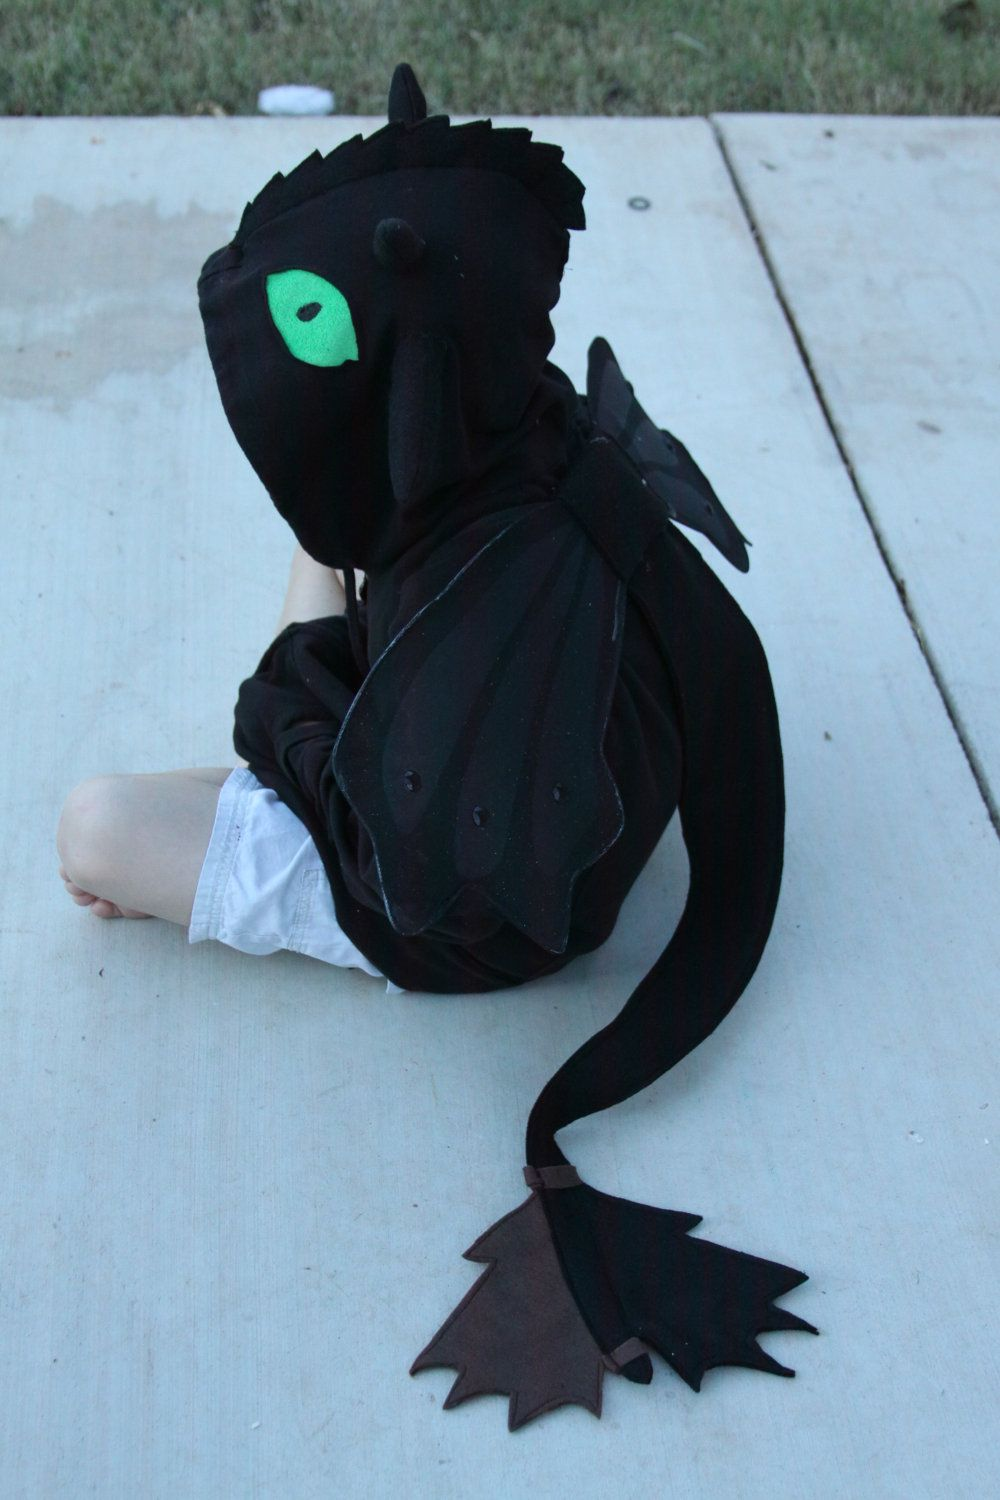 How to train your dragon toothless costume 6000 via etsy how to train your dragon toothless costume 6000 via etsy ccuart Choice Image